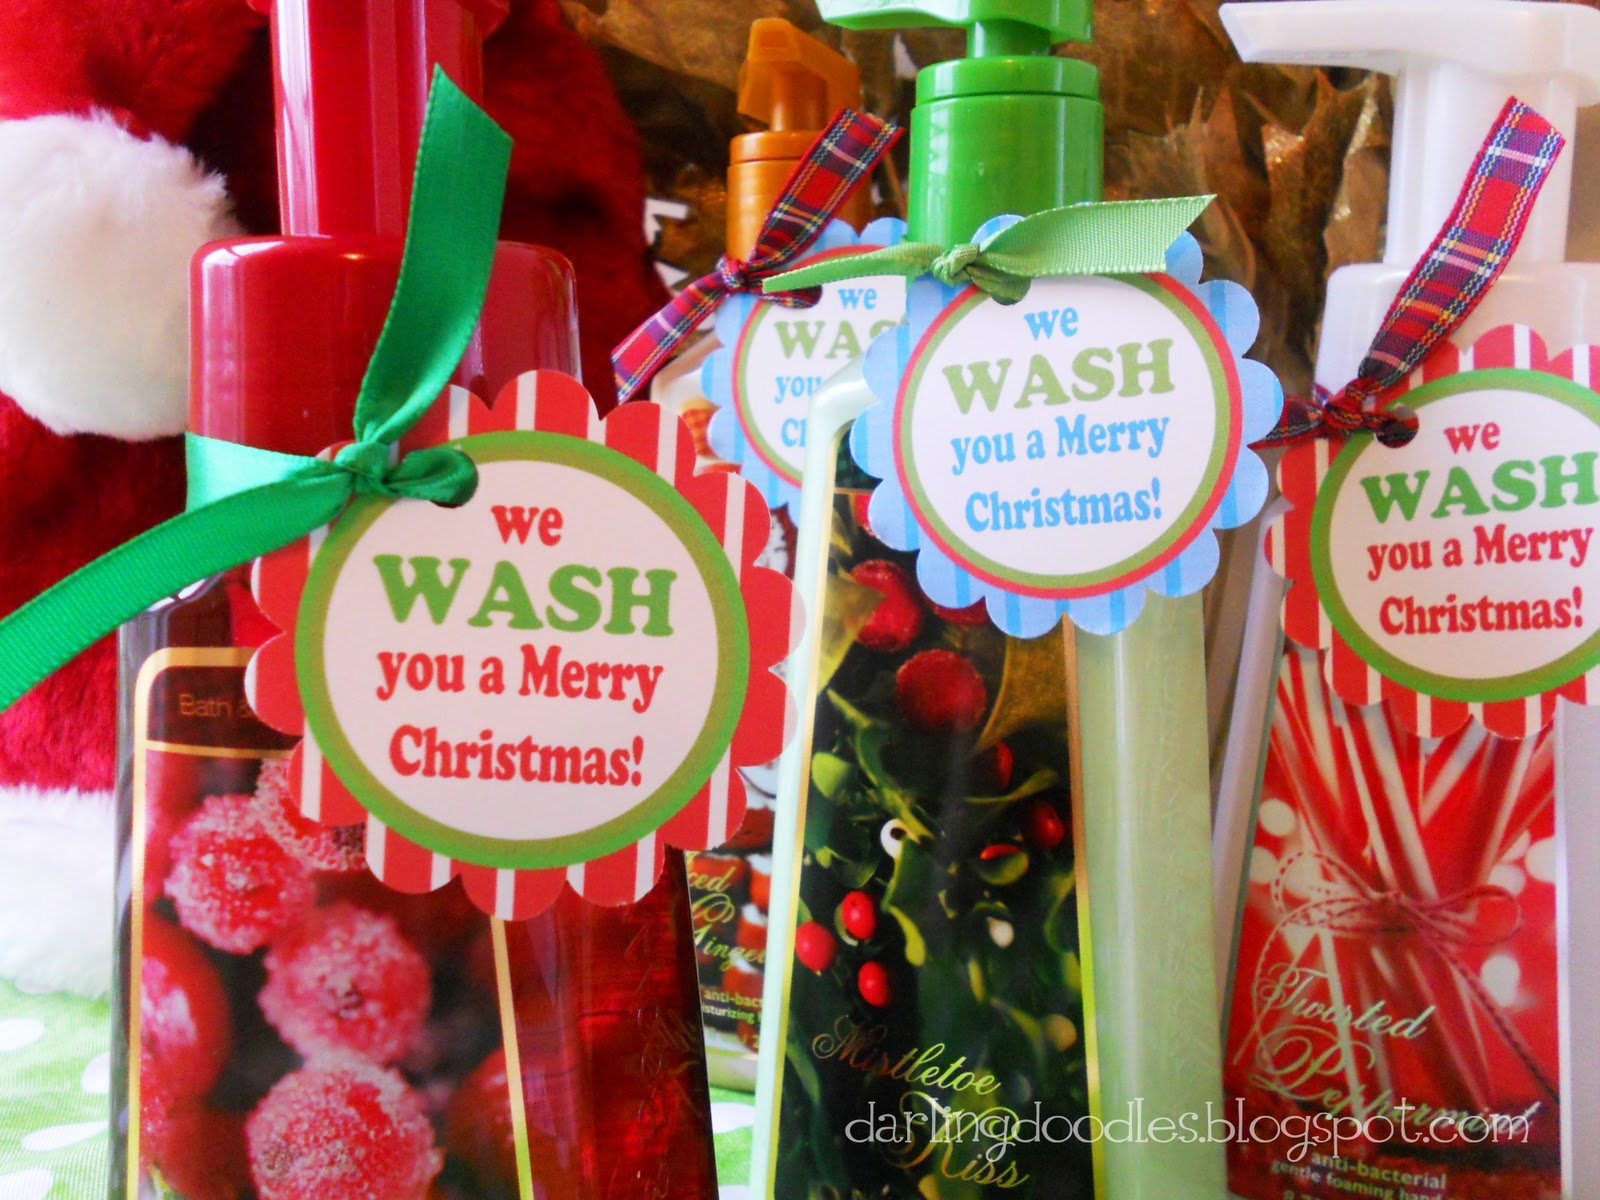 photograph regarding We Wash You a Merry Christmas Free Printable known as Darling Doodles: 12 Times of Present-mas, Reward #1